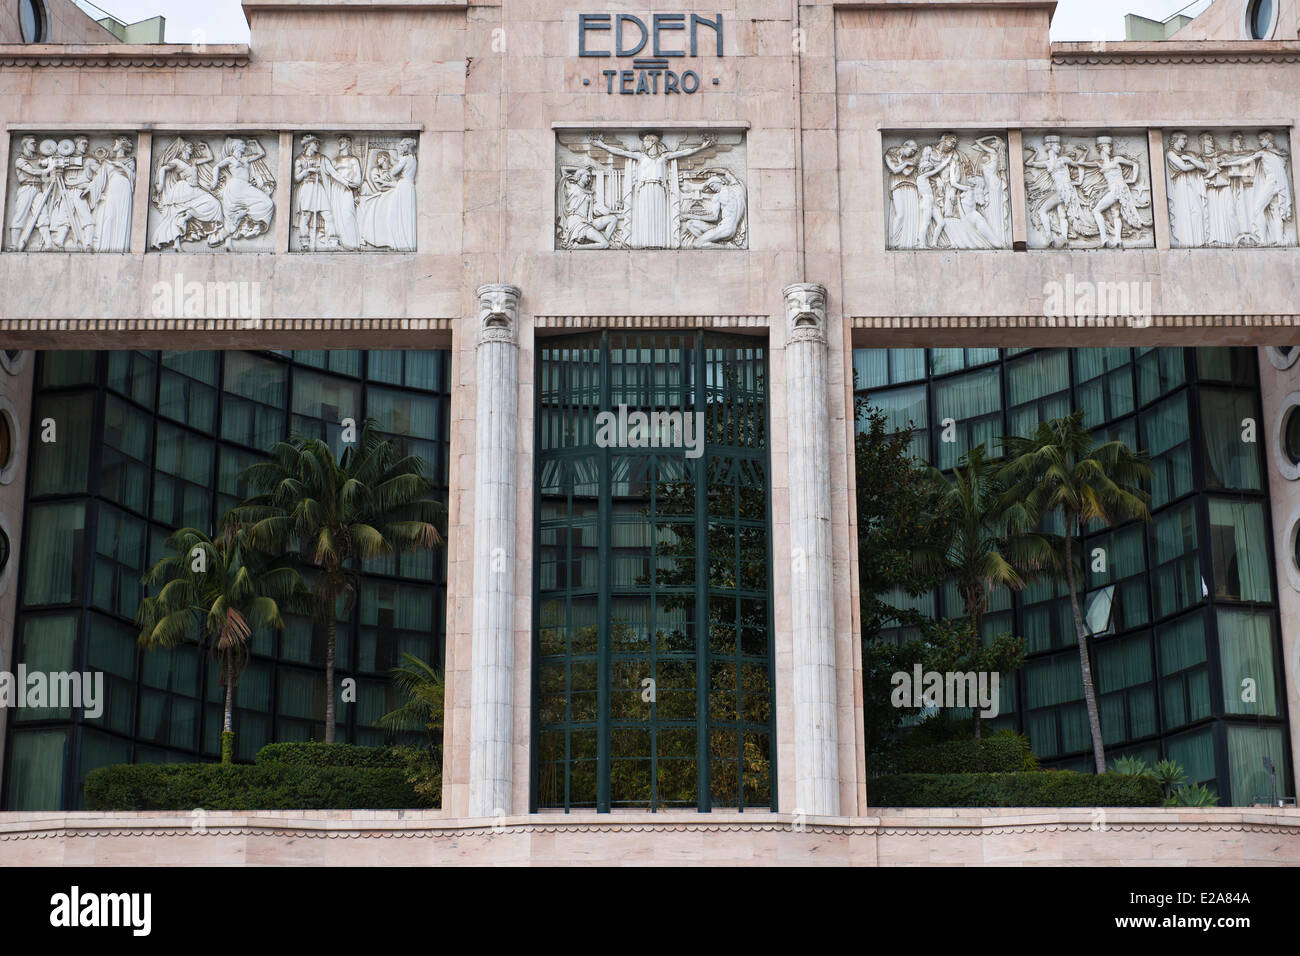 Portugal, Lisbon, the Eden Teatro and its imposing facade on Praca dos Restauradores by the architect Cassiano Branco - Stock Image